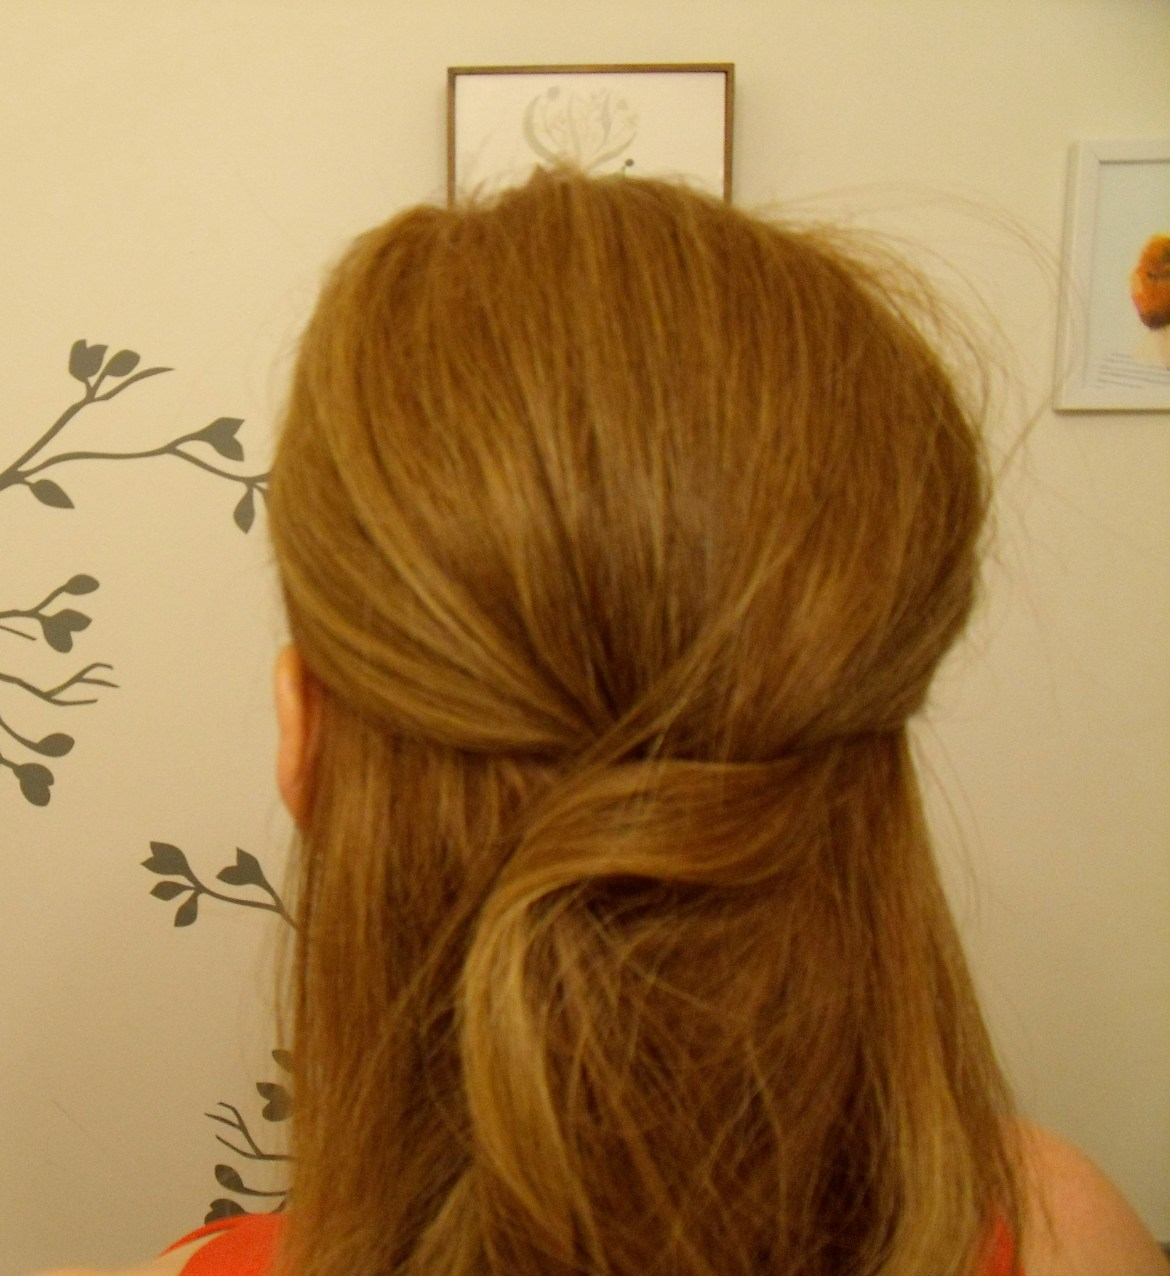 Bobby pins in place holding the hair half up.